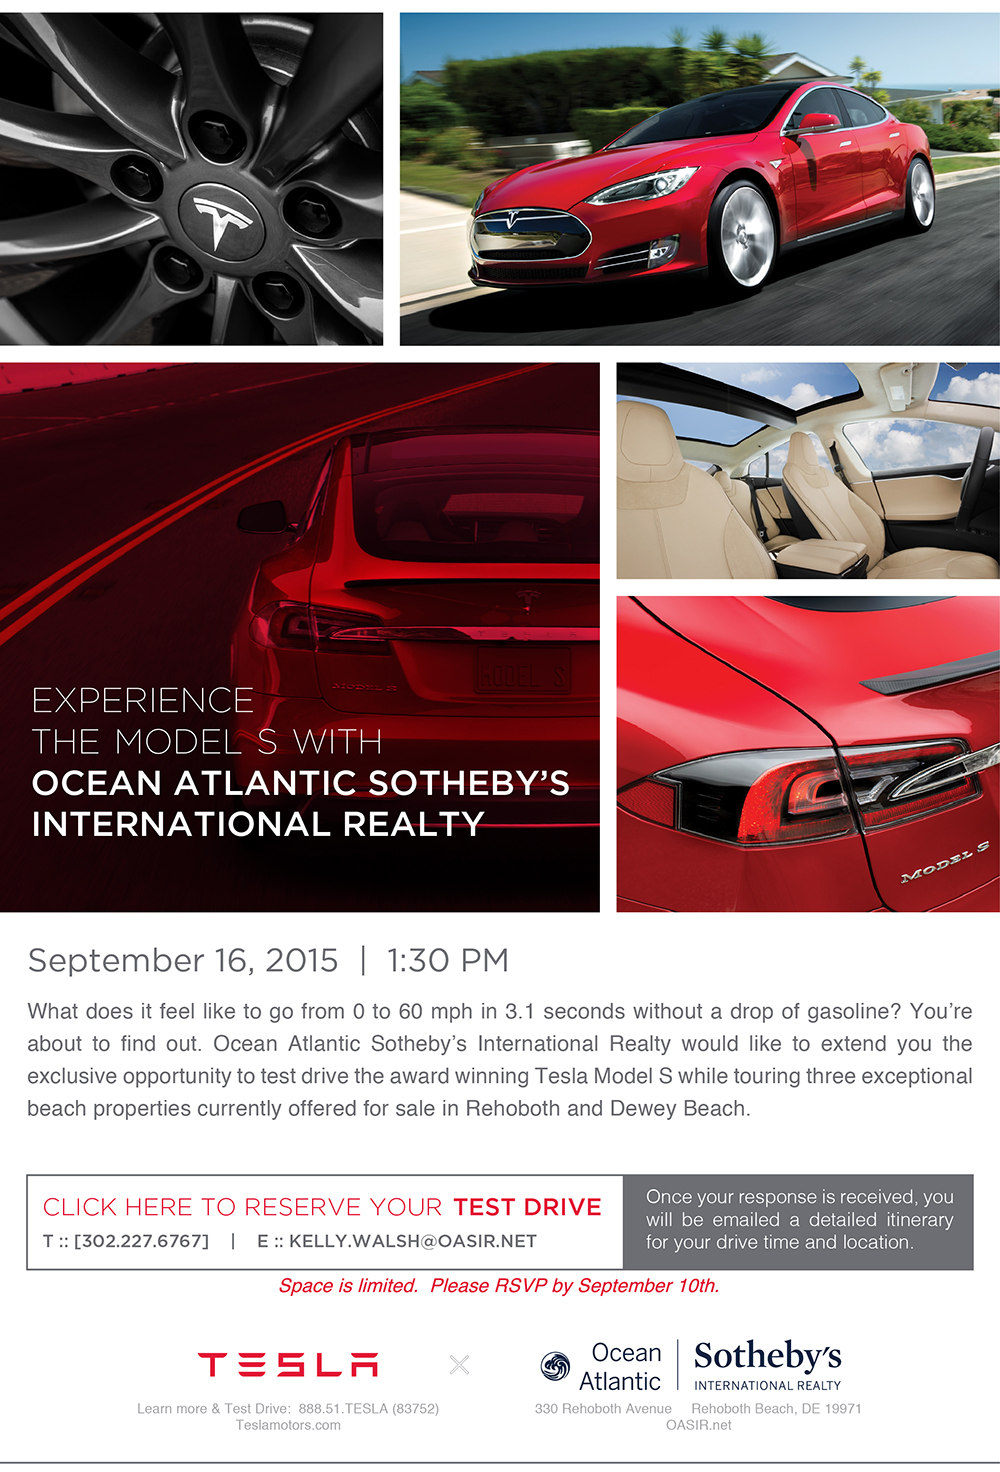 Tesla Test Drive Event presented by Ocean Atlantic Sotheby